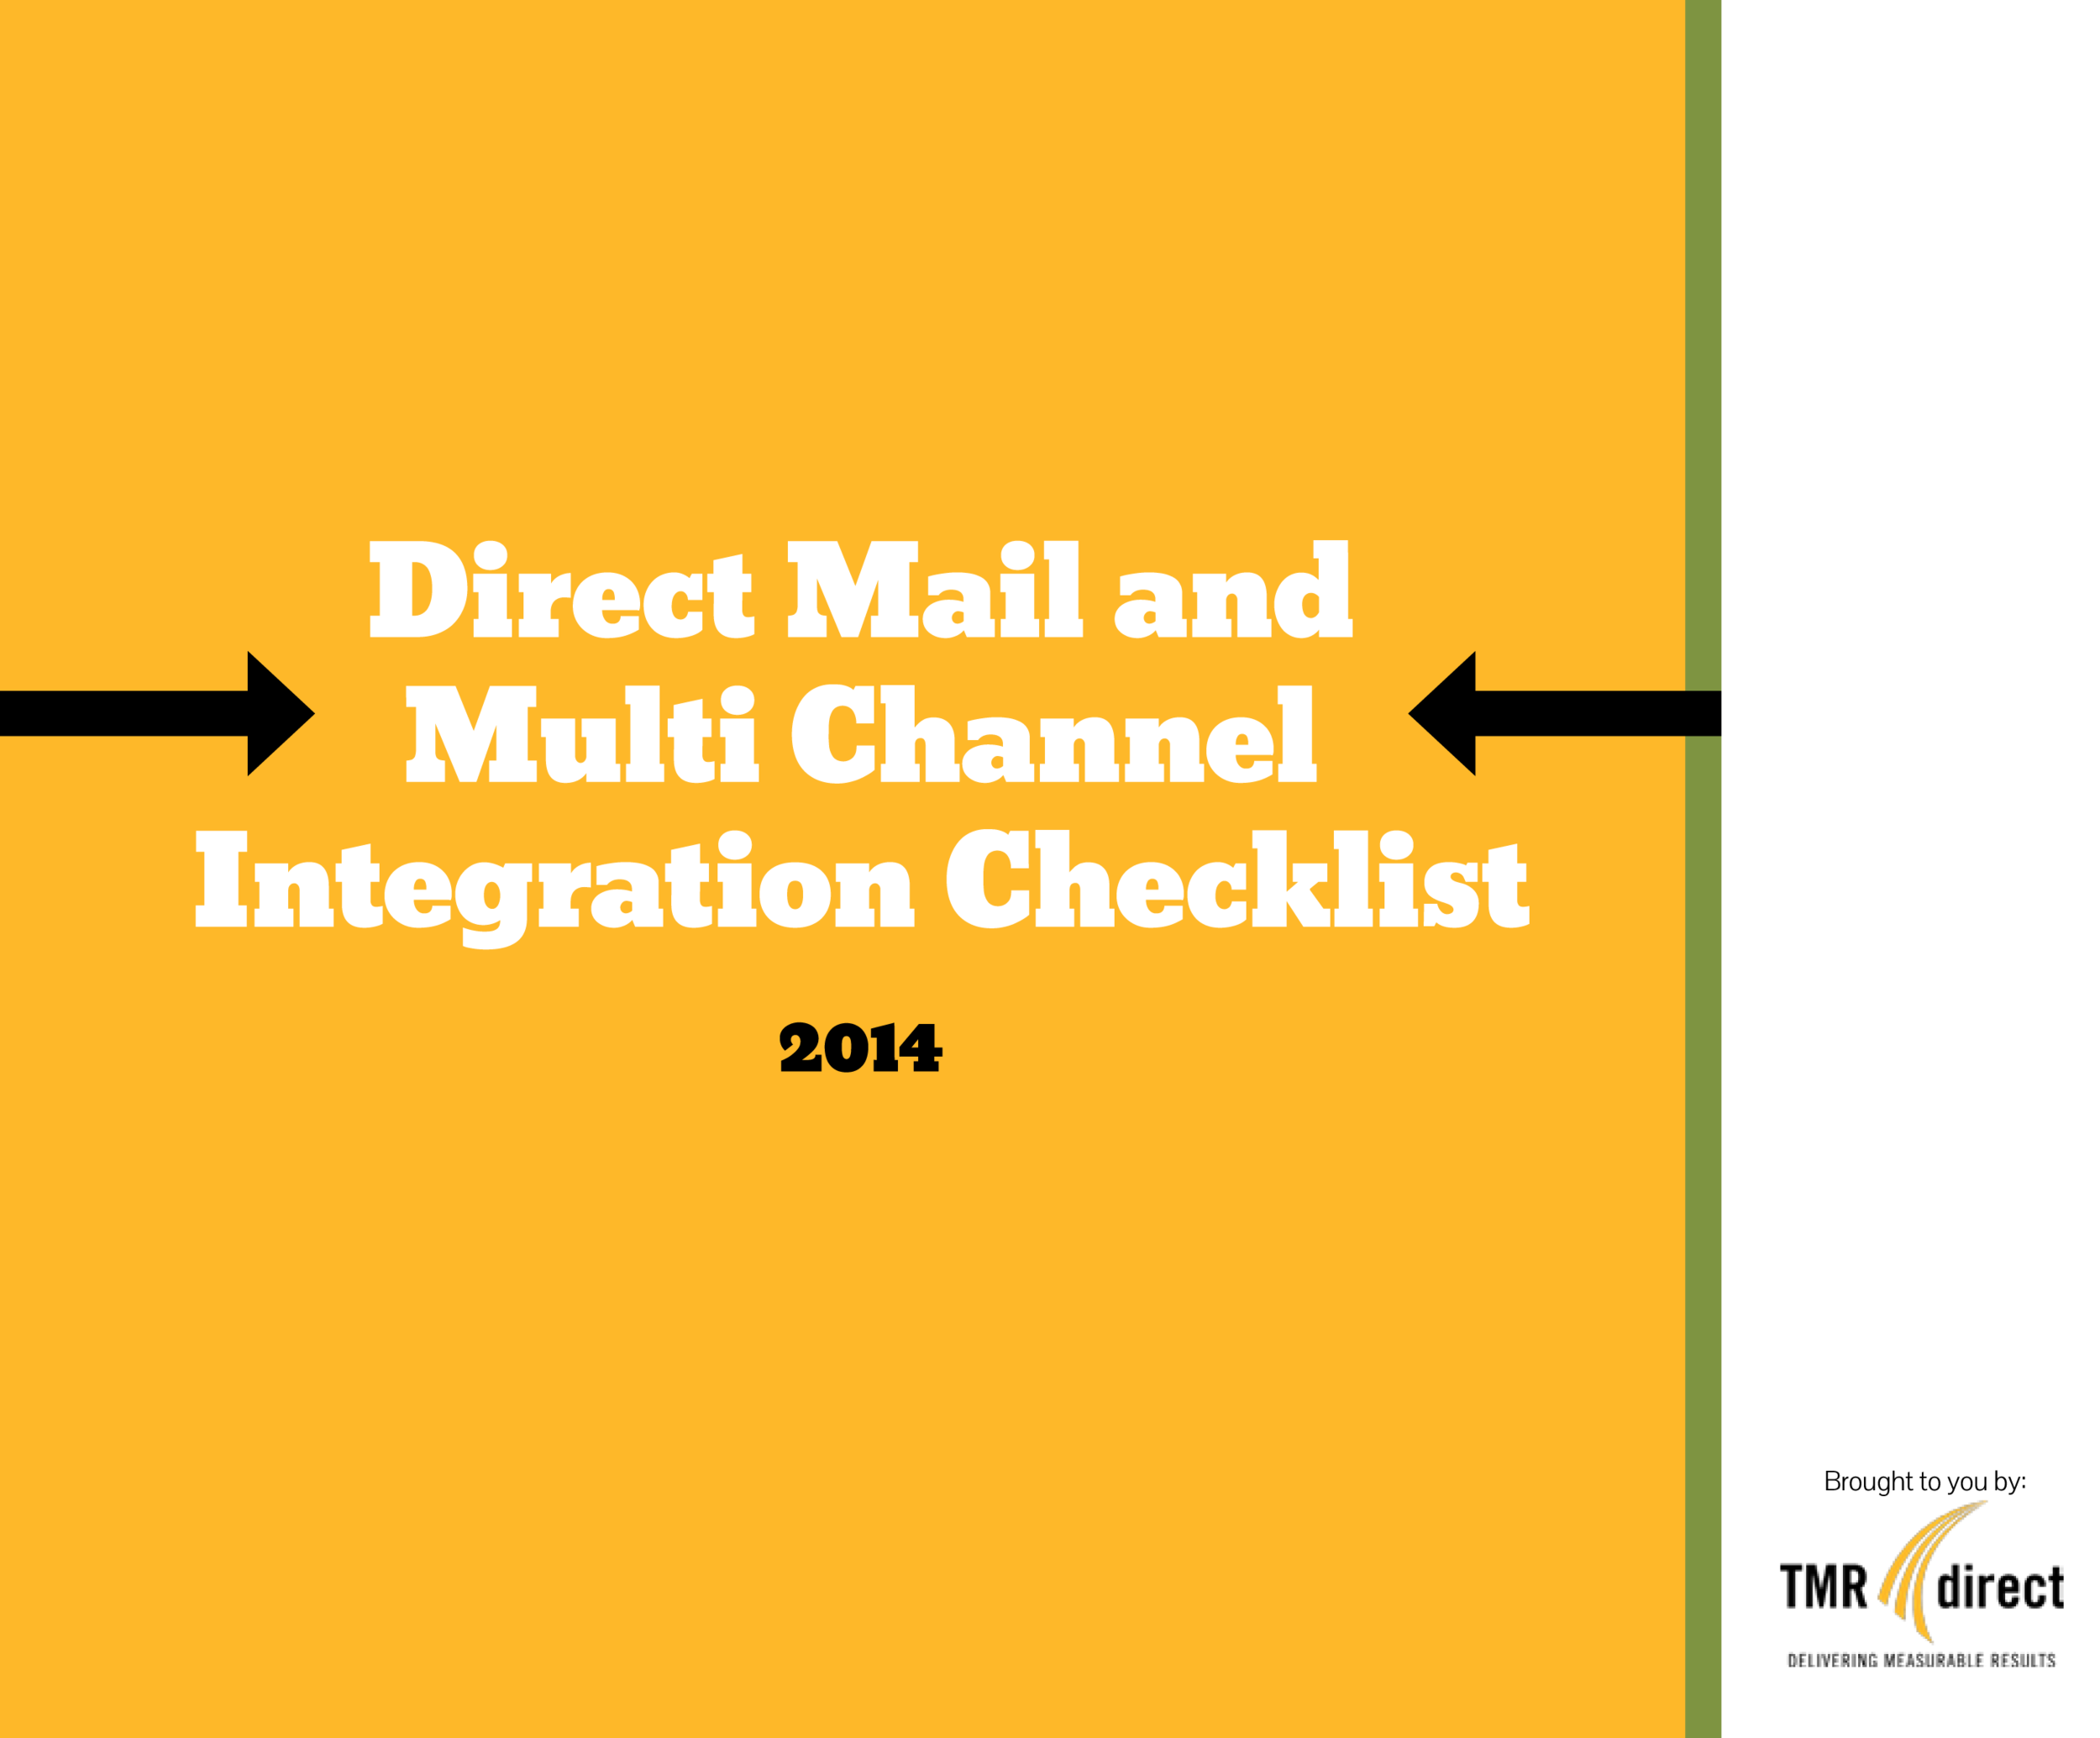 Direct Mail and Multi Channel Integration ChecklistC-1.png